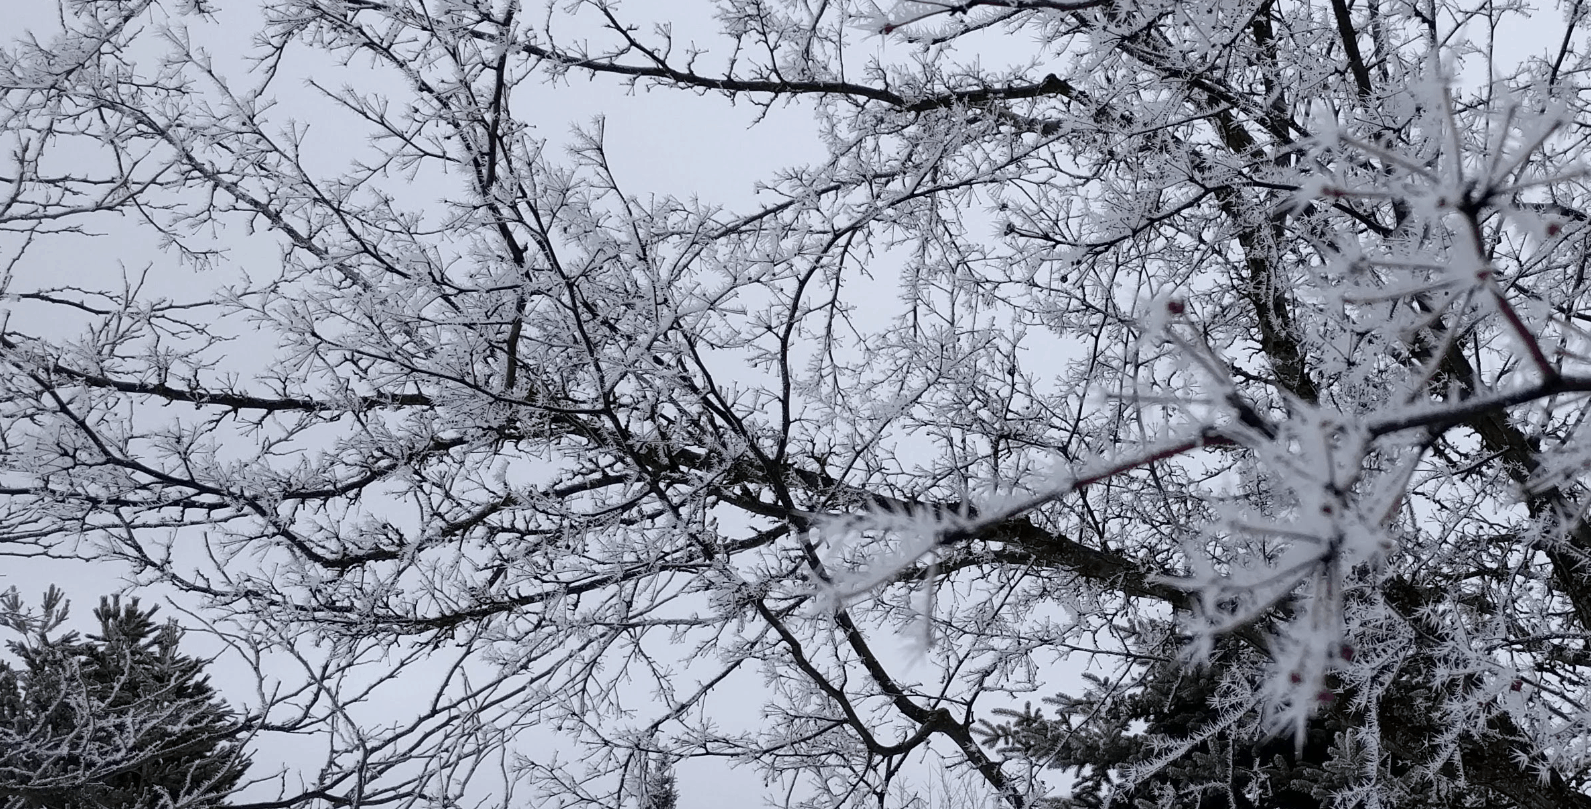 Snow spikes all over tree